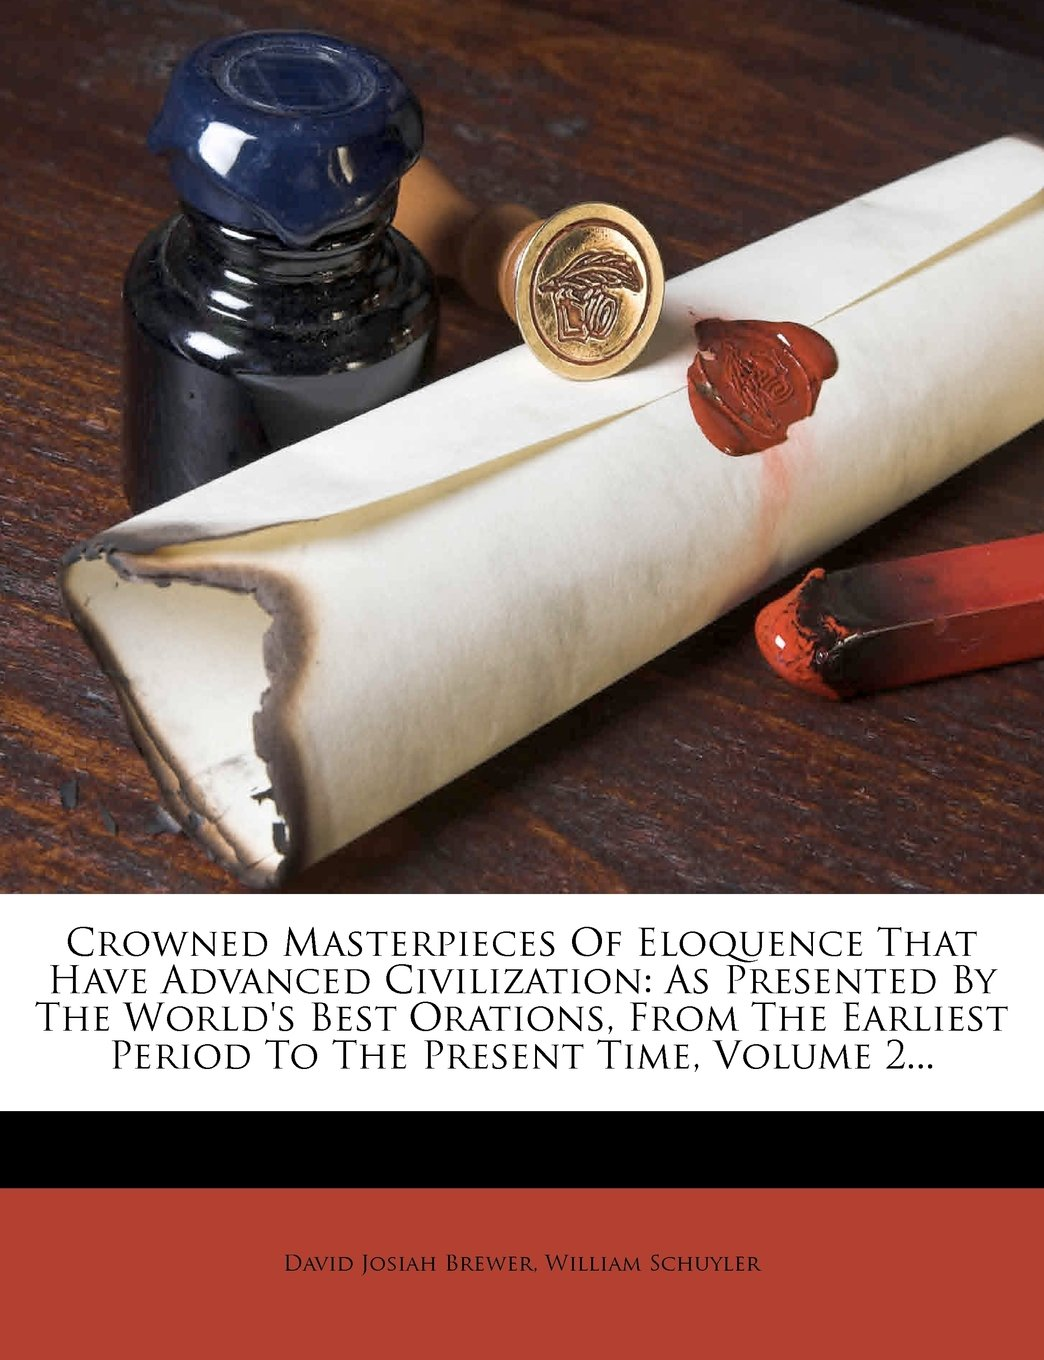 Download Crowned Masterpieces Of Eloquence That Have Advanced Civilization: As Presented By The World's Best Orations, From The Earliest Period To The Present Time, Volume 2... pdf epub